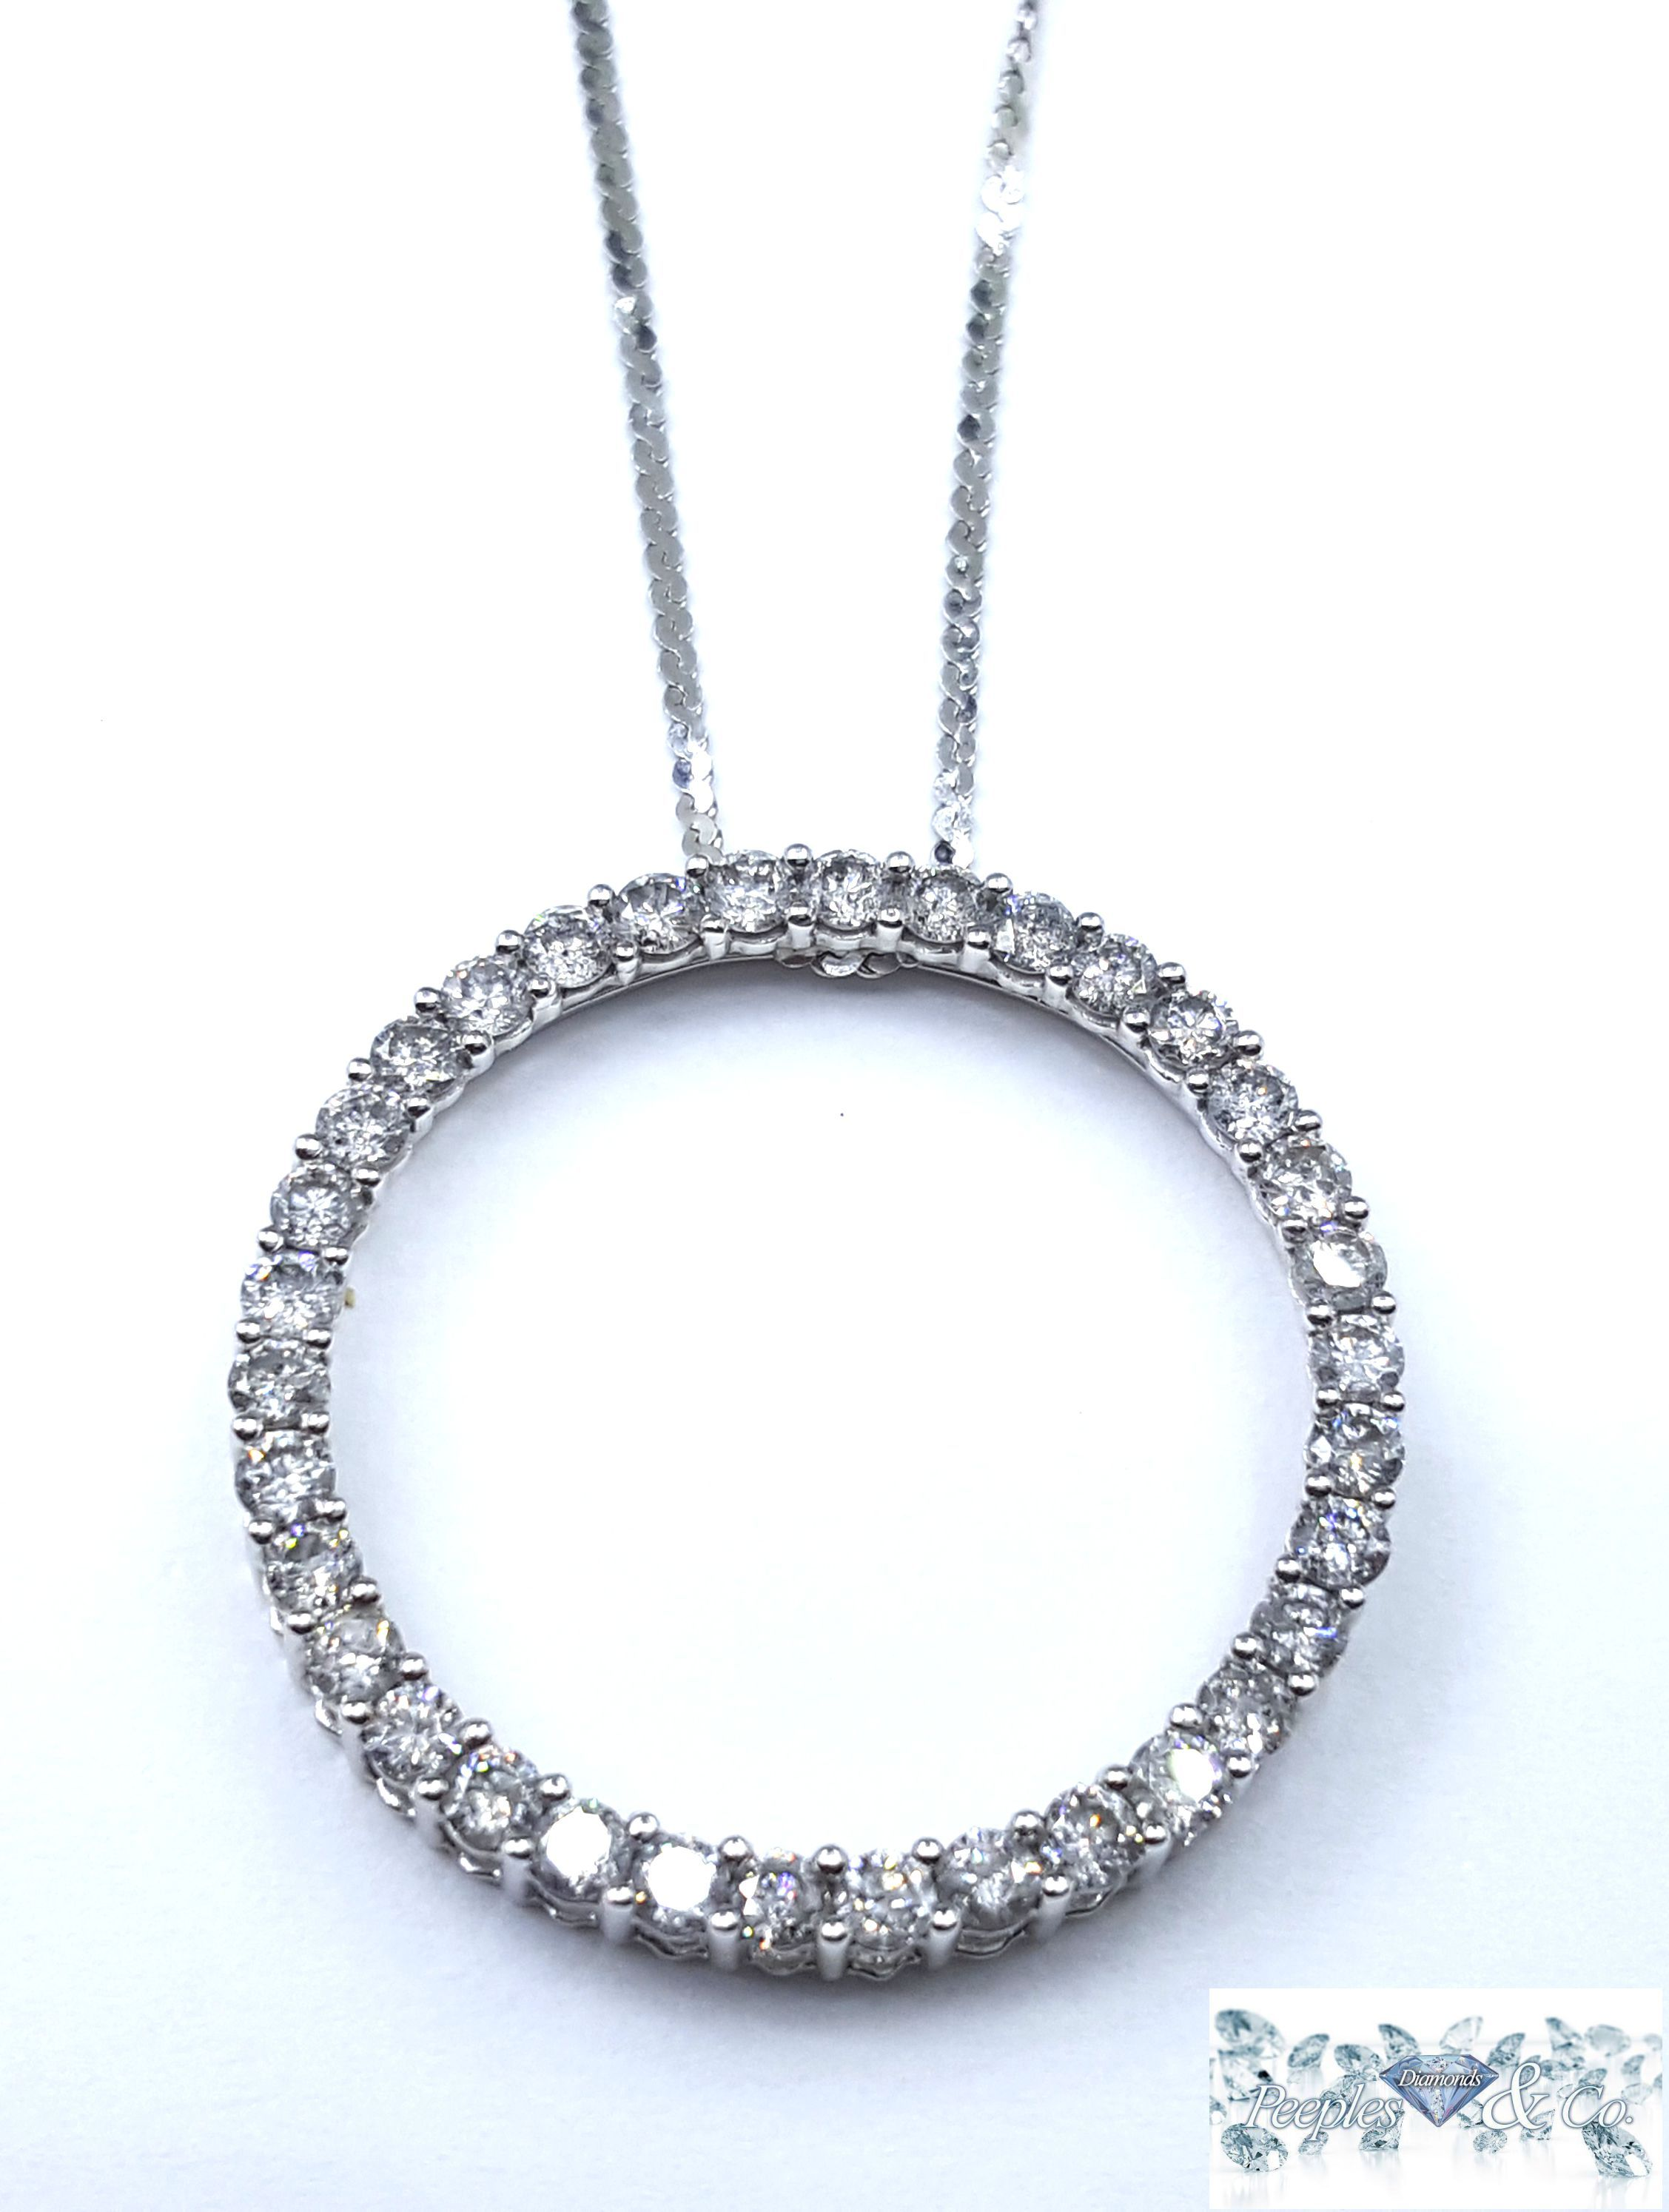 Cut: Round Brilliant  Carat: 2.45  Color: H-I  Clarity: SI1/SI2  Grams:6.3  Metal Purity:14Karat White Gold        Type:Pendant/Chain Price:$2,800.00 100% Natural earth mined diamond I do not sell enhanced diamonds  Ships out in an elegant jewelry box for your pleasure